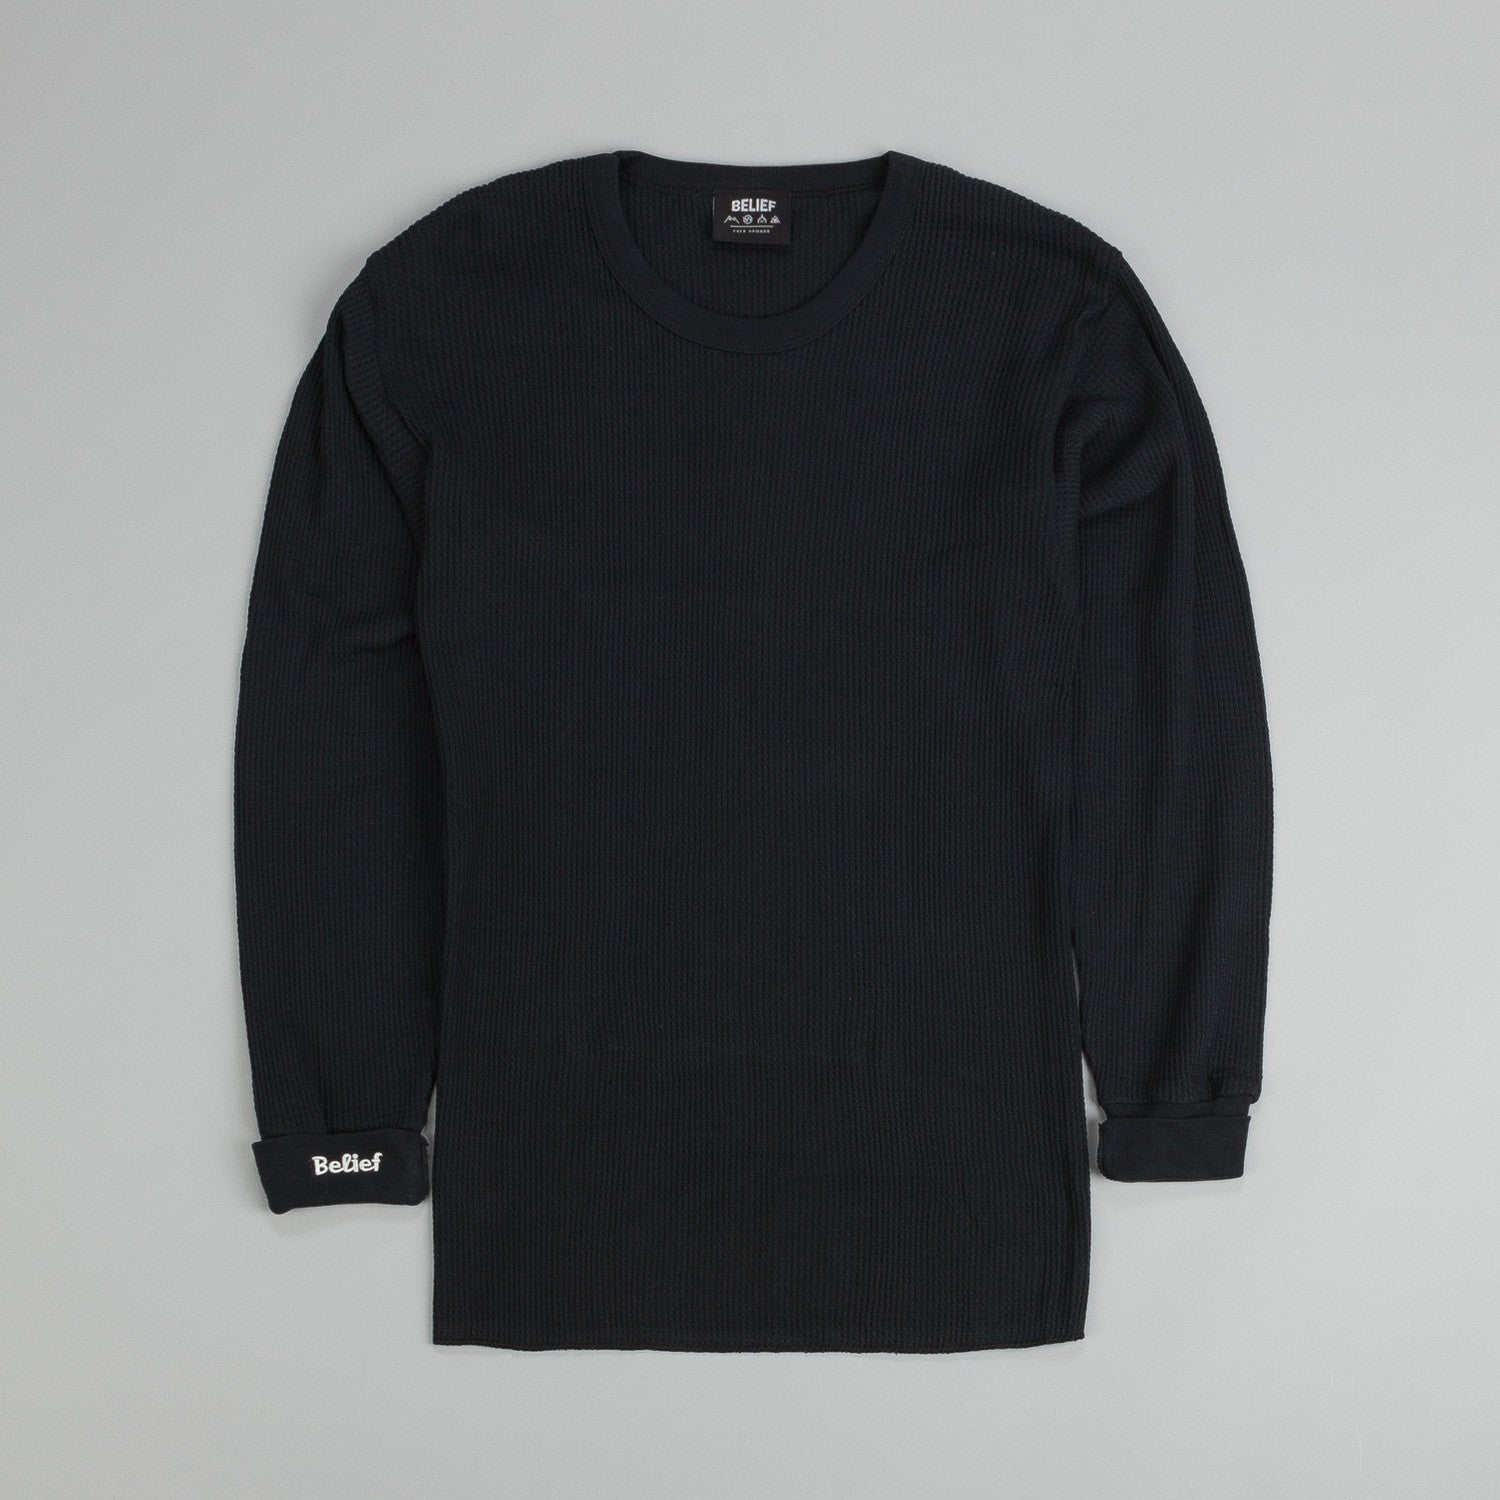 Belief Authentic Cuff Thermal Long Sleeve T-Shirt Black